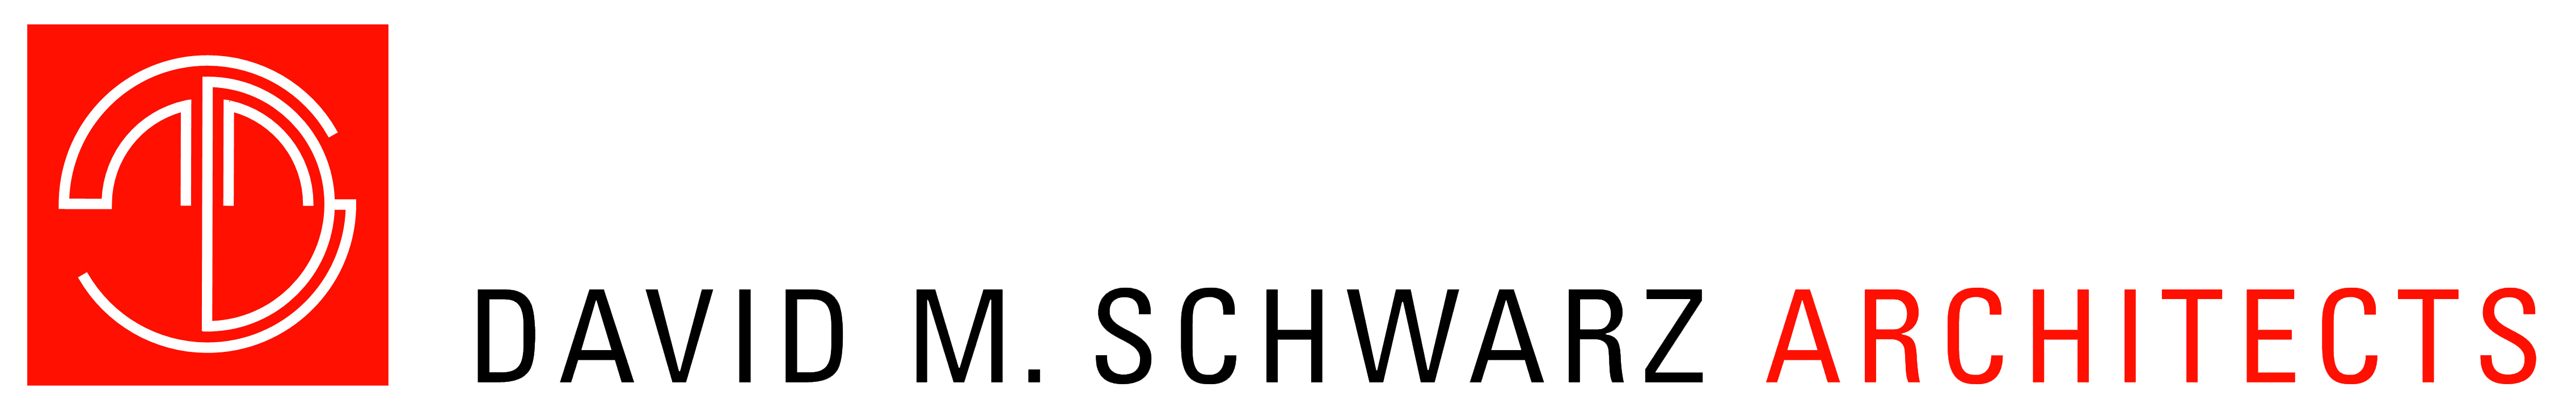 David M. Schwarz Architects